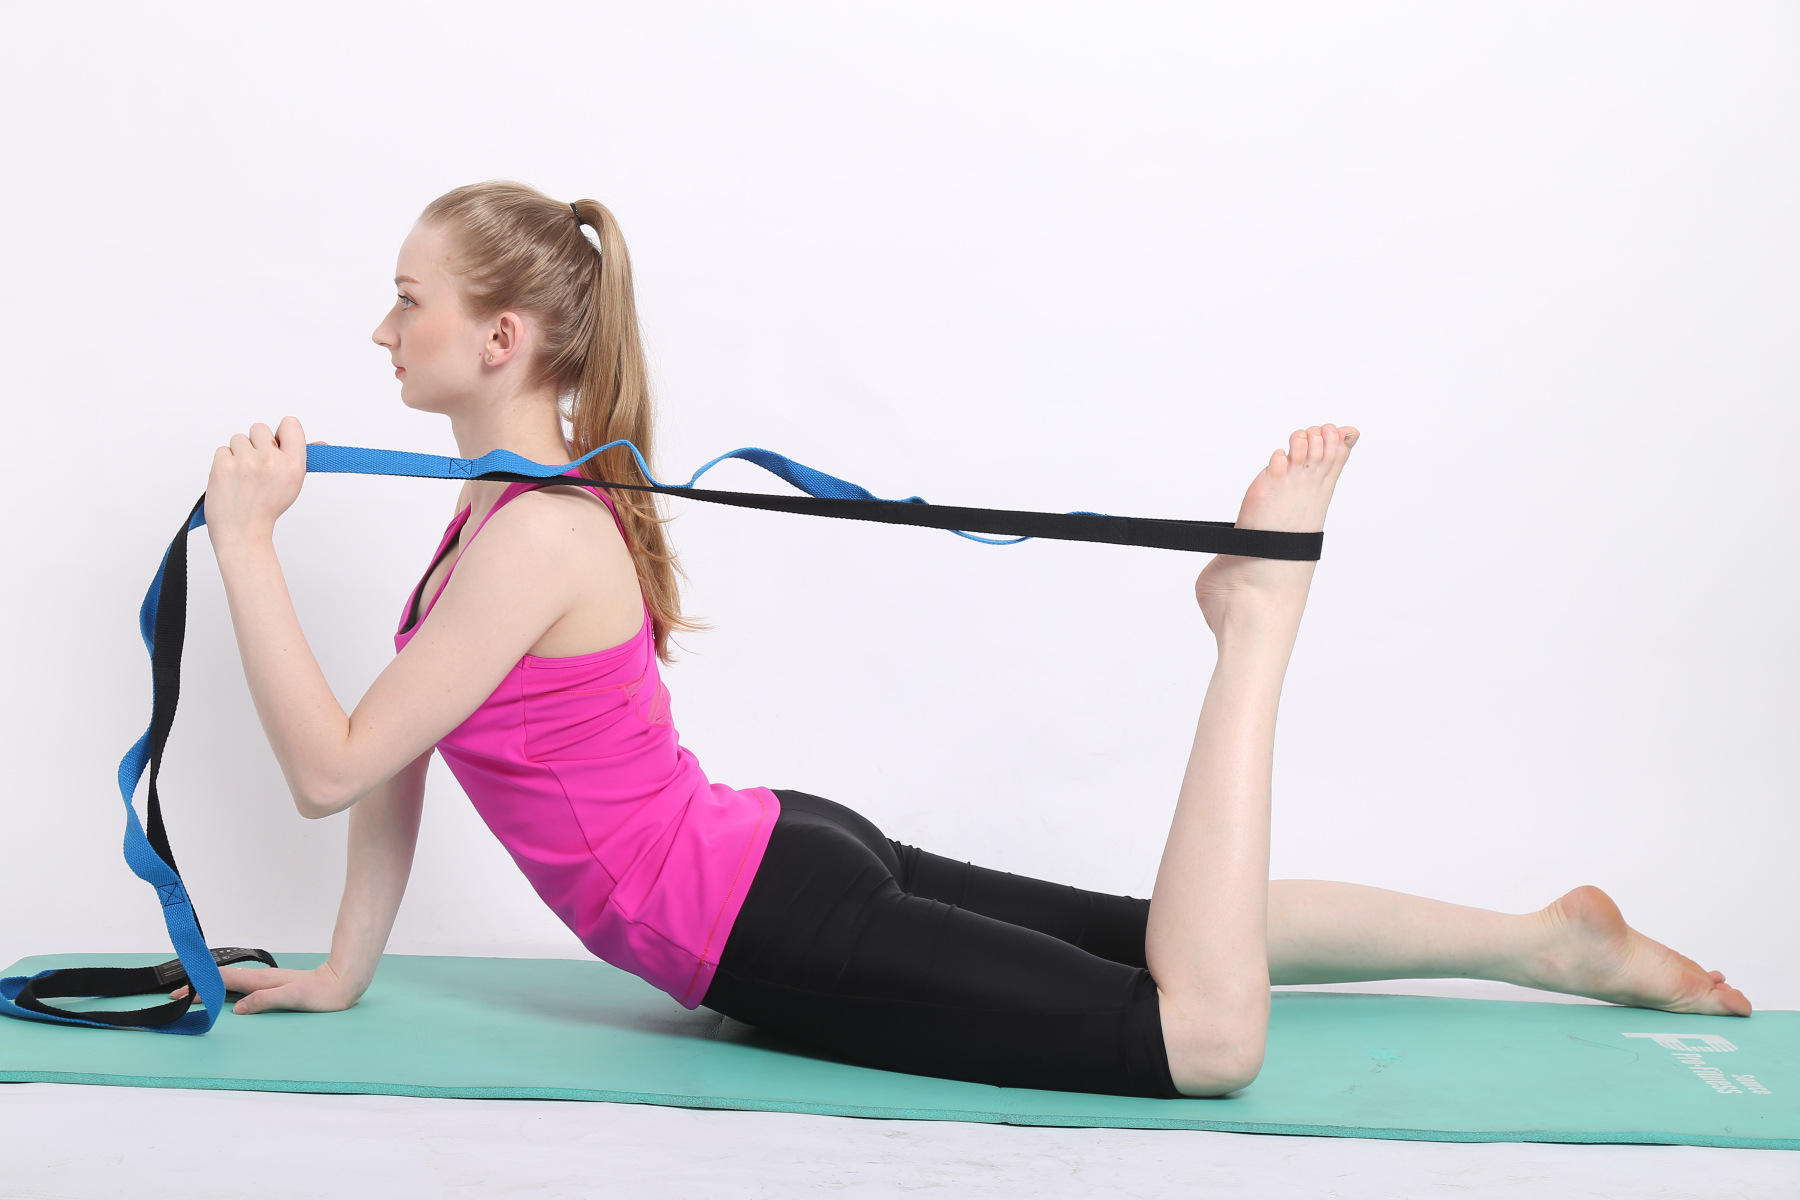 Yoga Chrysanthemum Rope Stretch Stretch Bar With Air Yoga Resistance With Tension Rope Training Rope